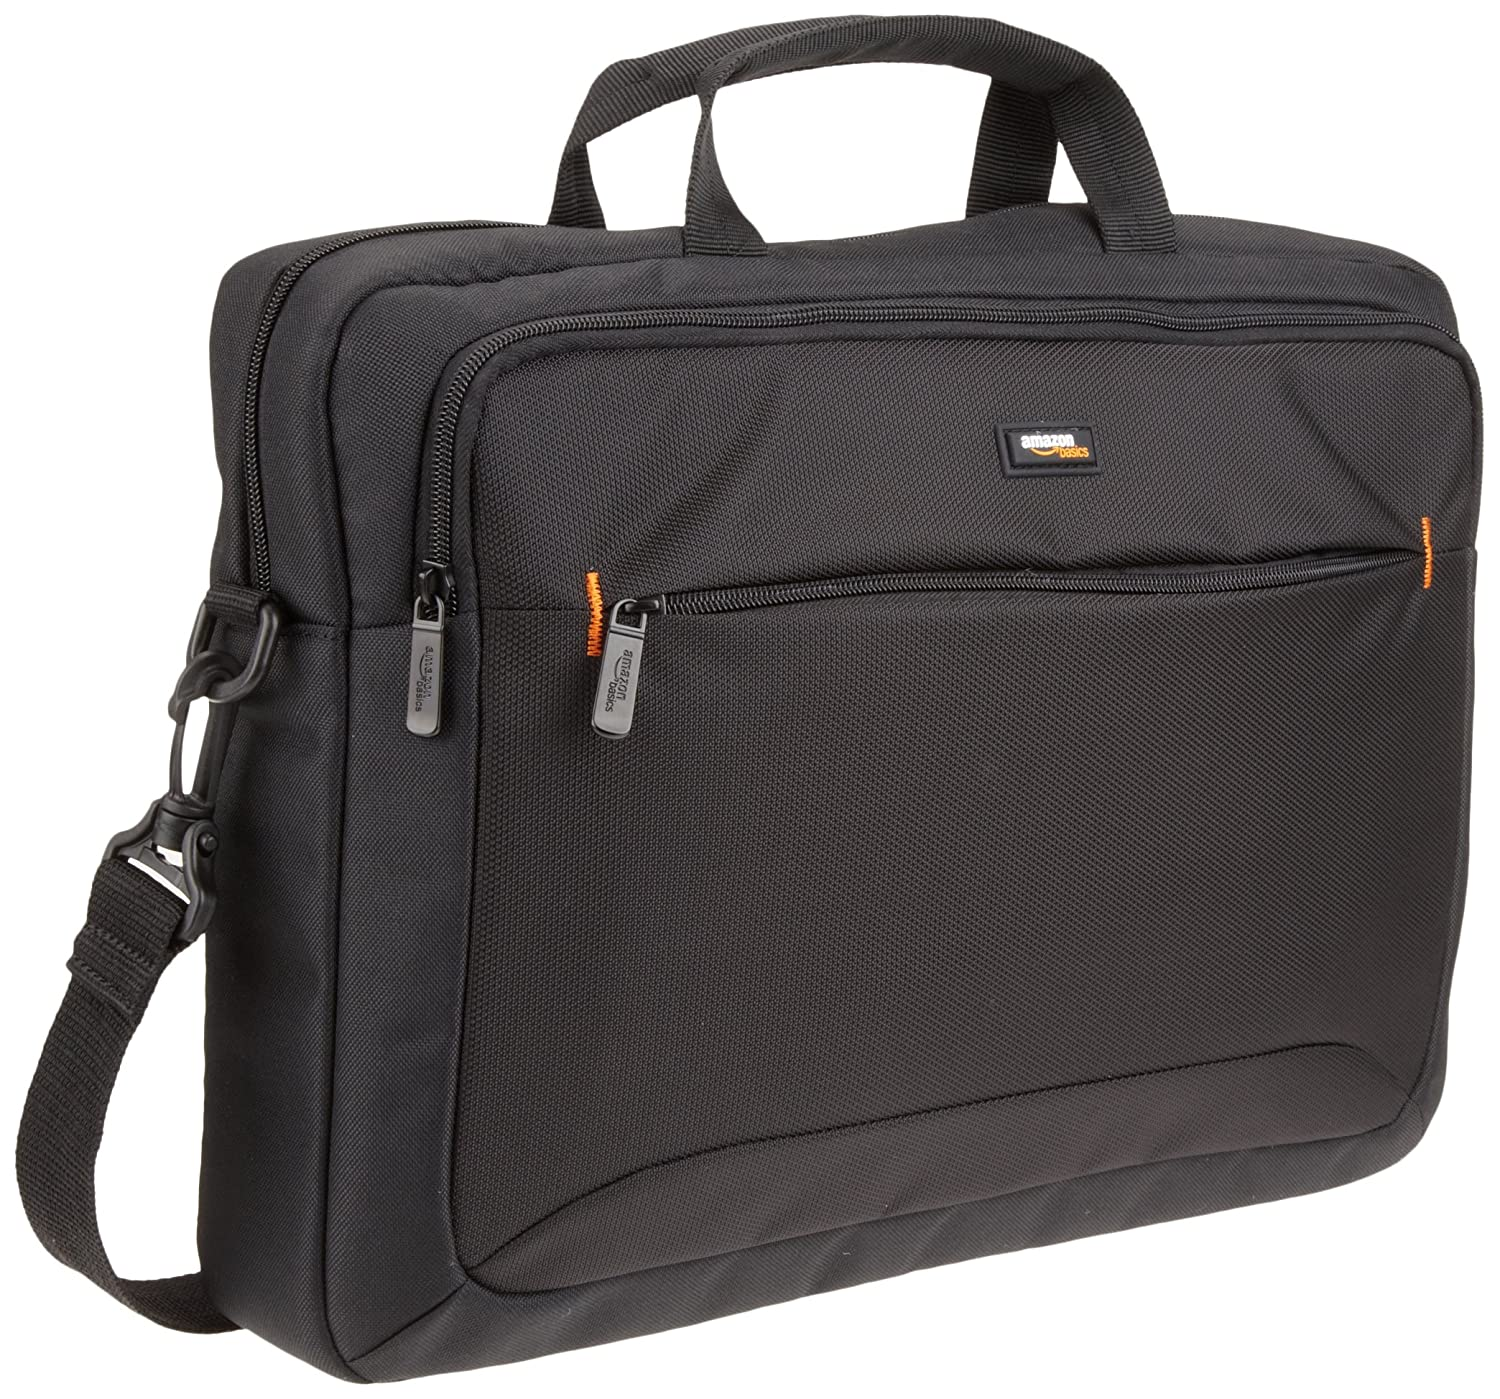 Cheap Fashion Laptop Bag - CEAGESP c9546206c978